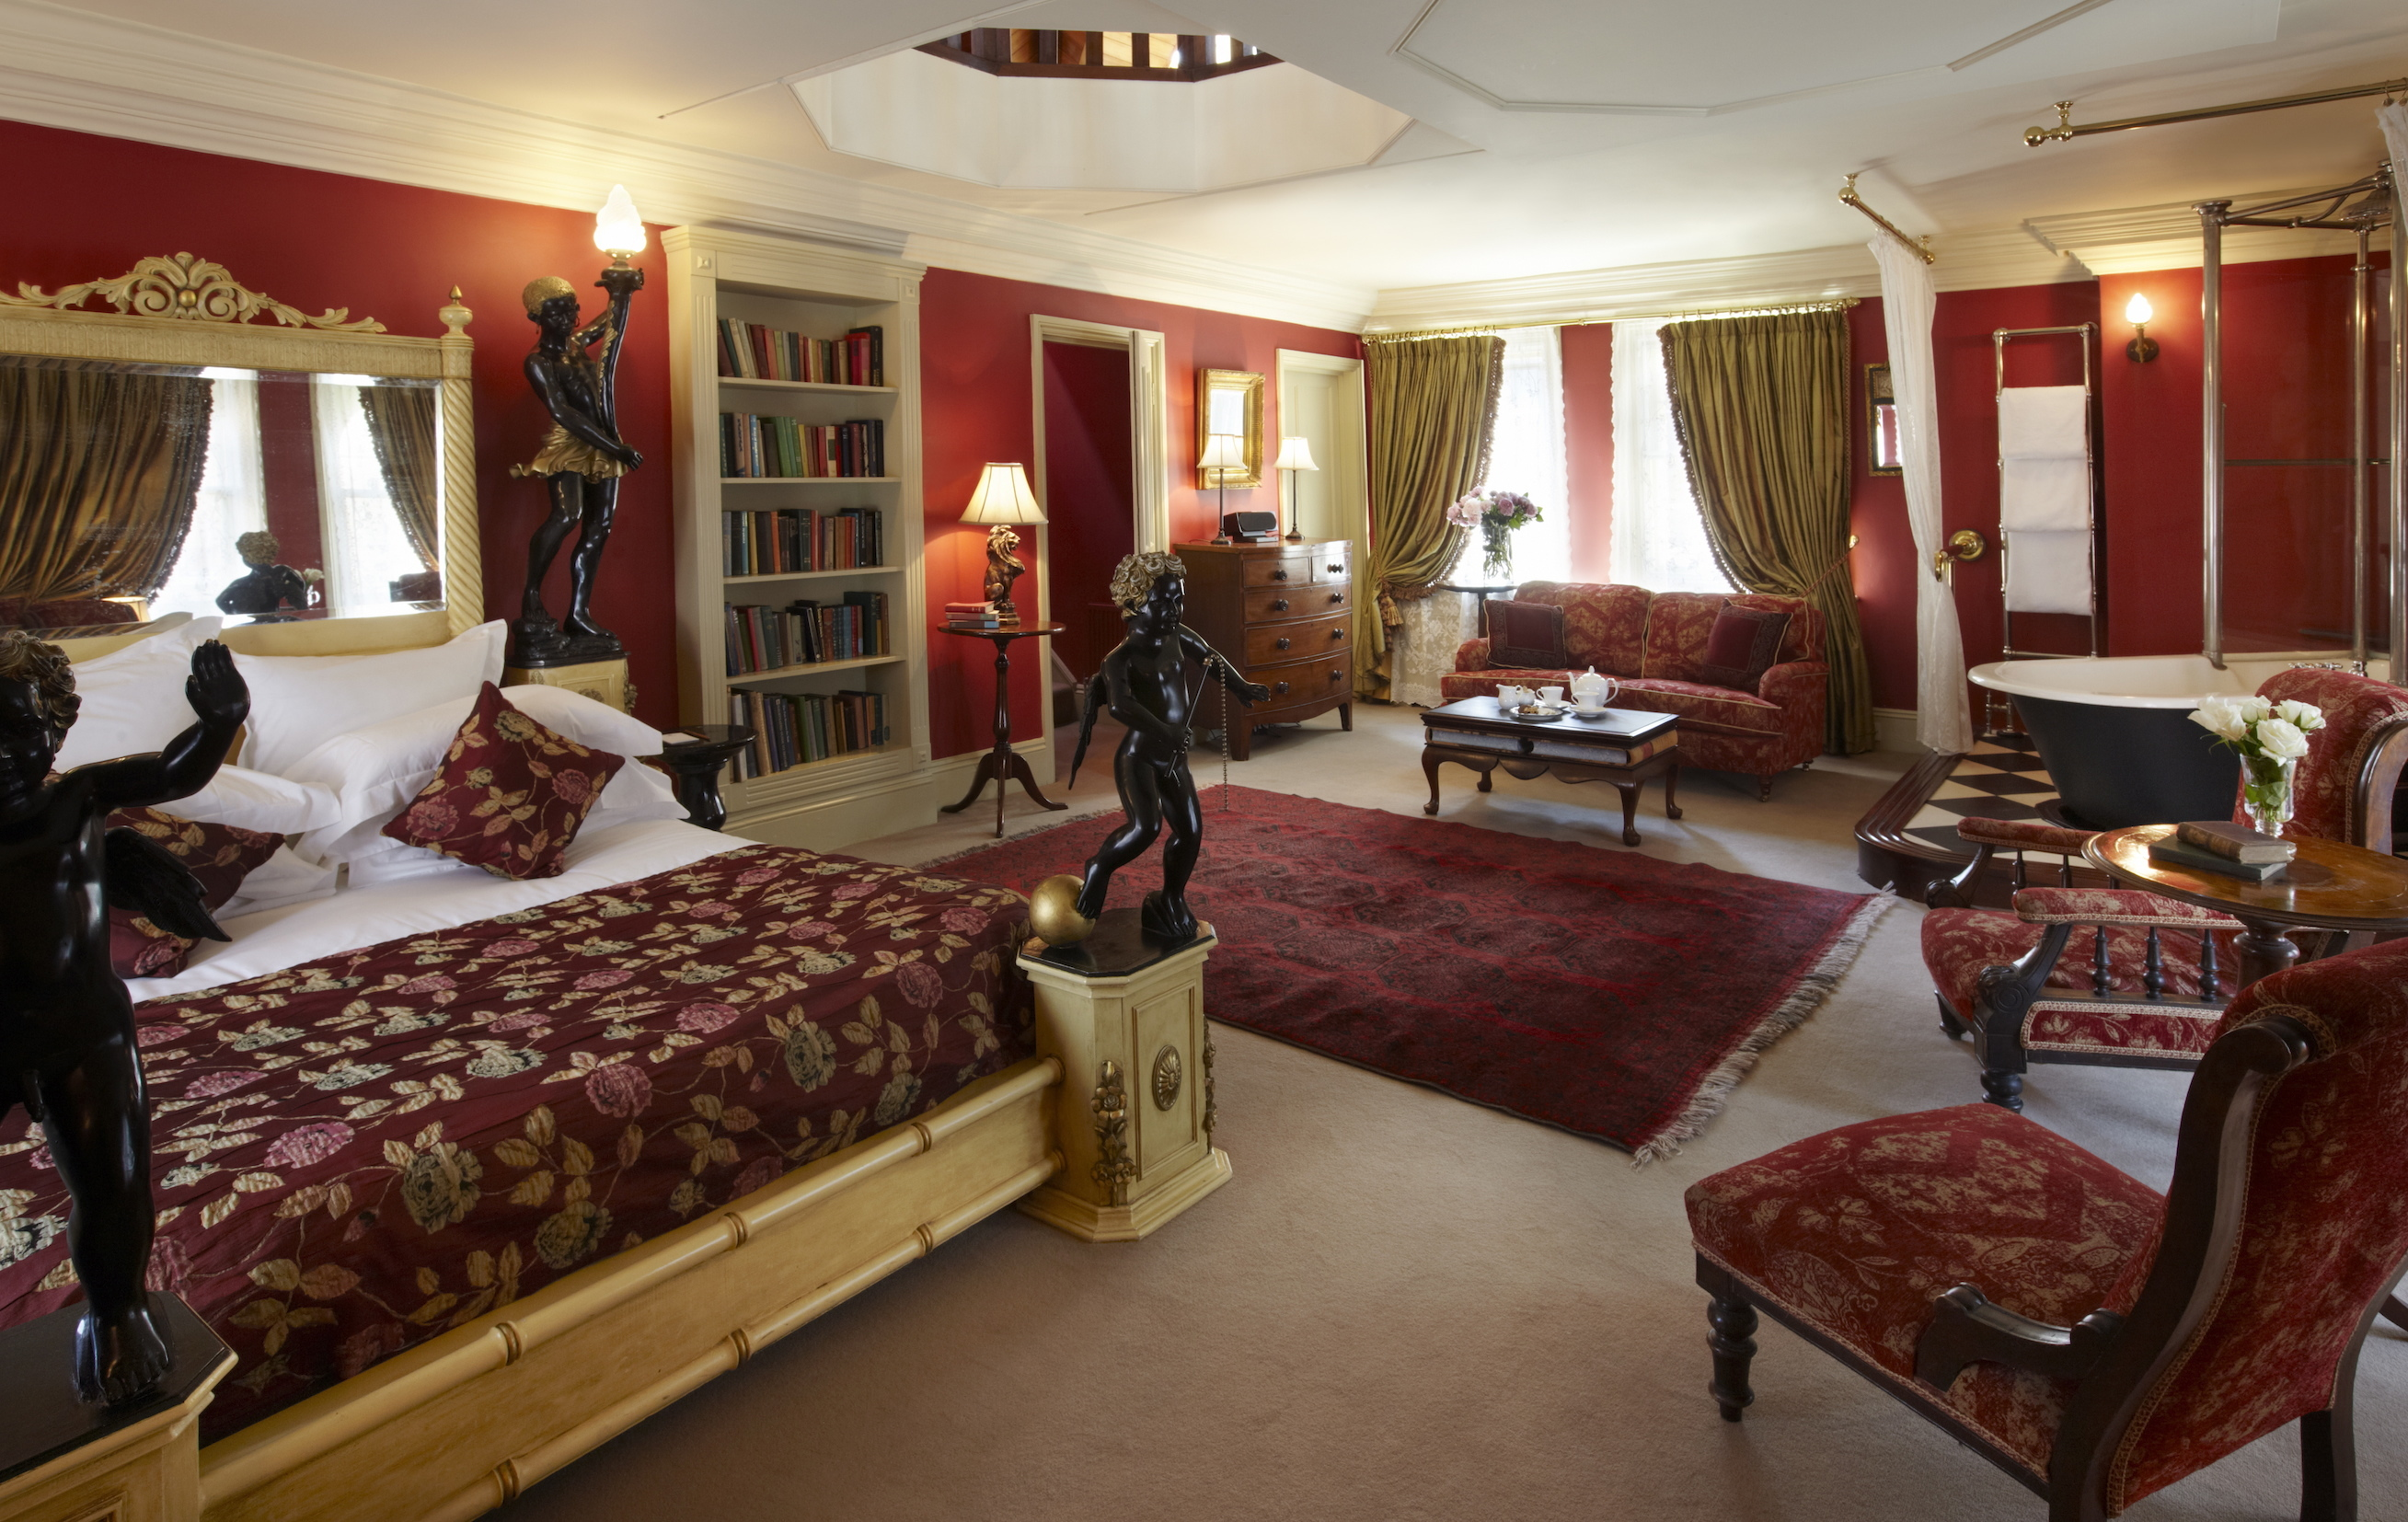 The best boutique hotels in London